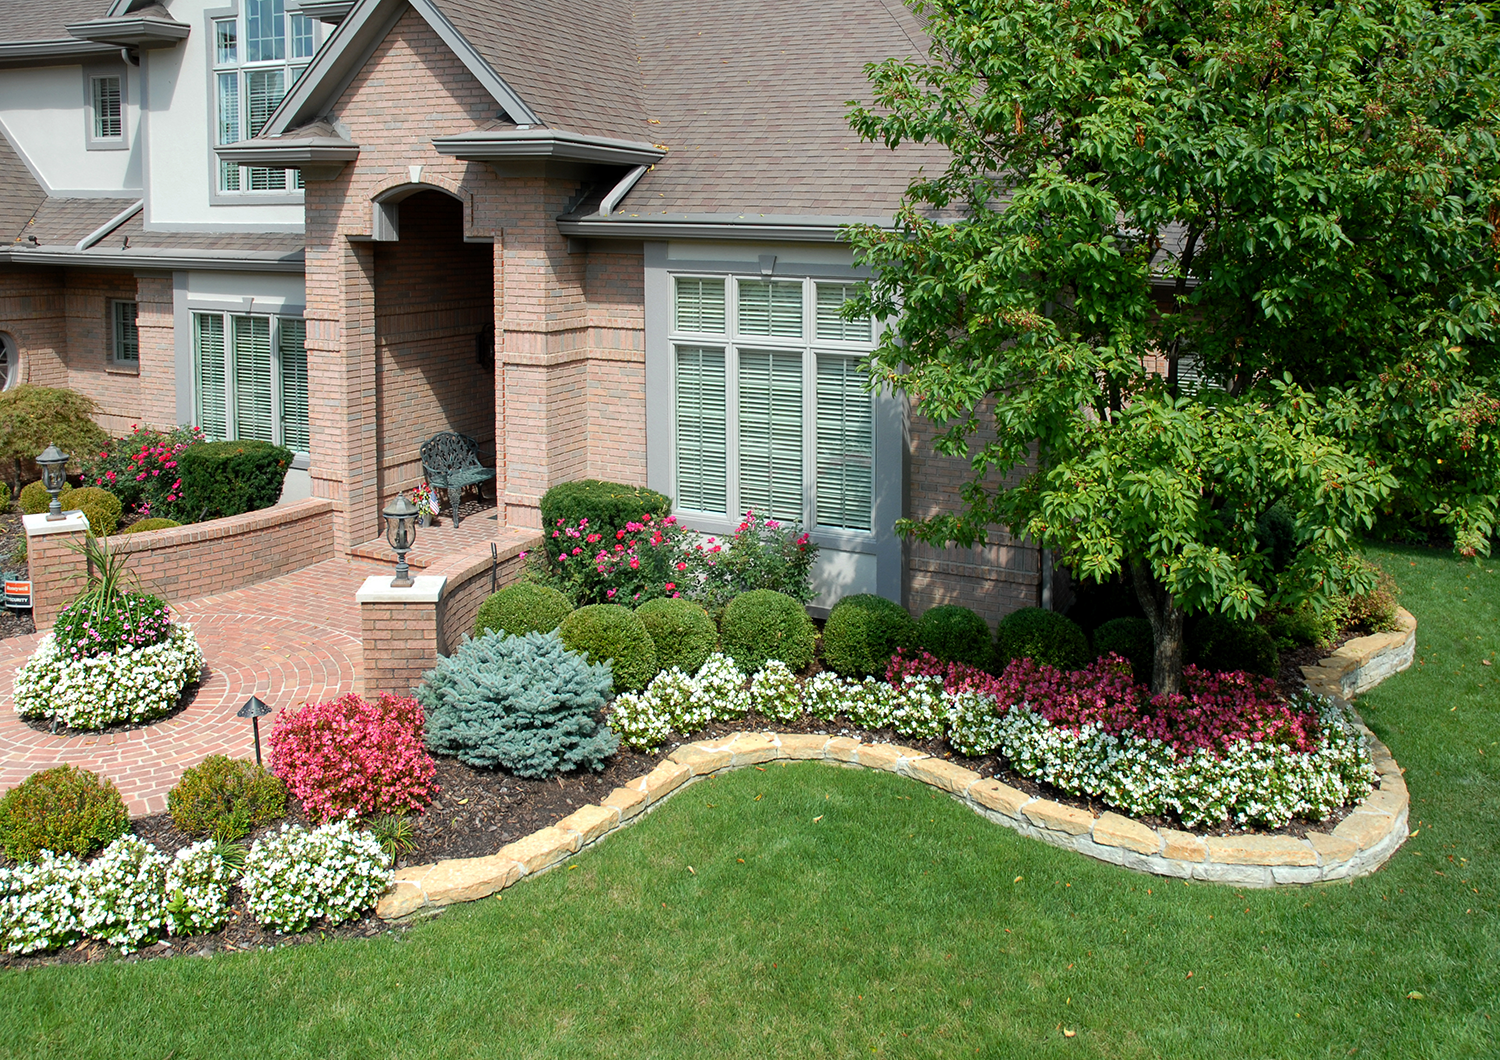 Plantings flower beds tinkerturf for Curb appeal landscaping